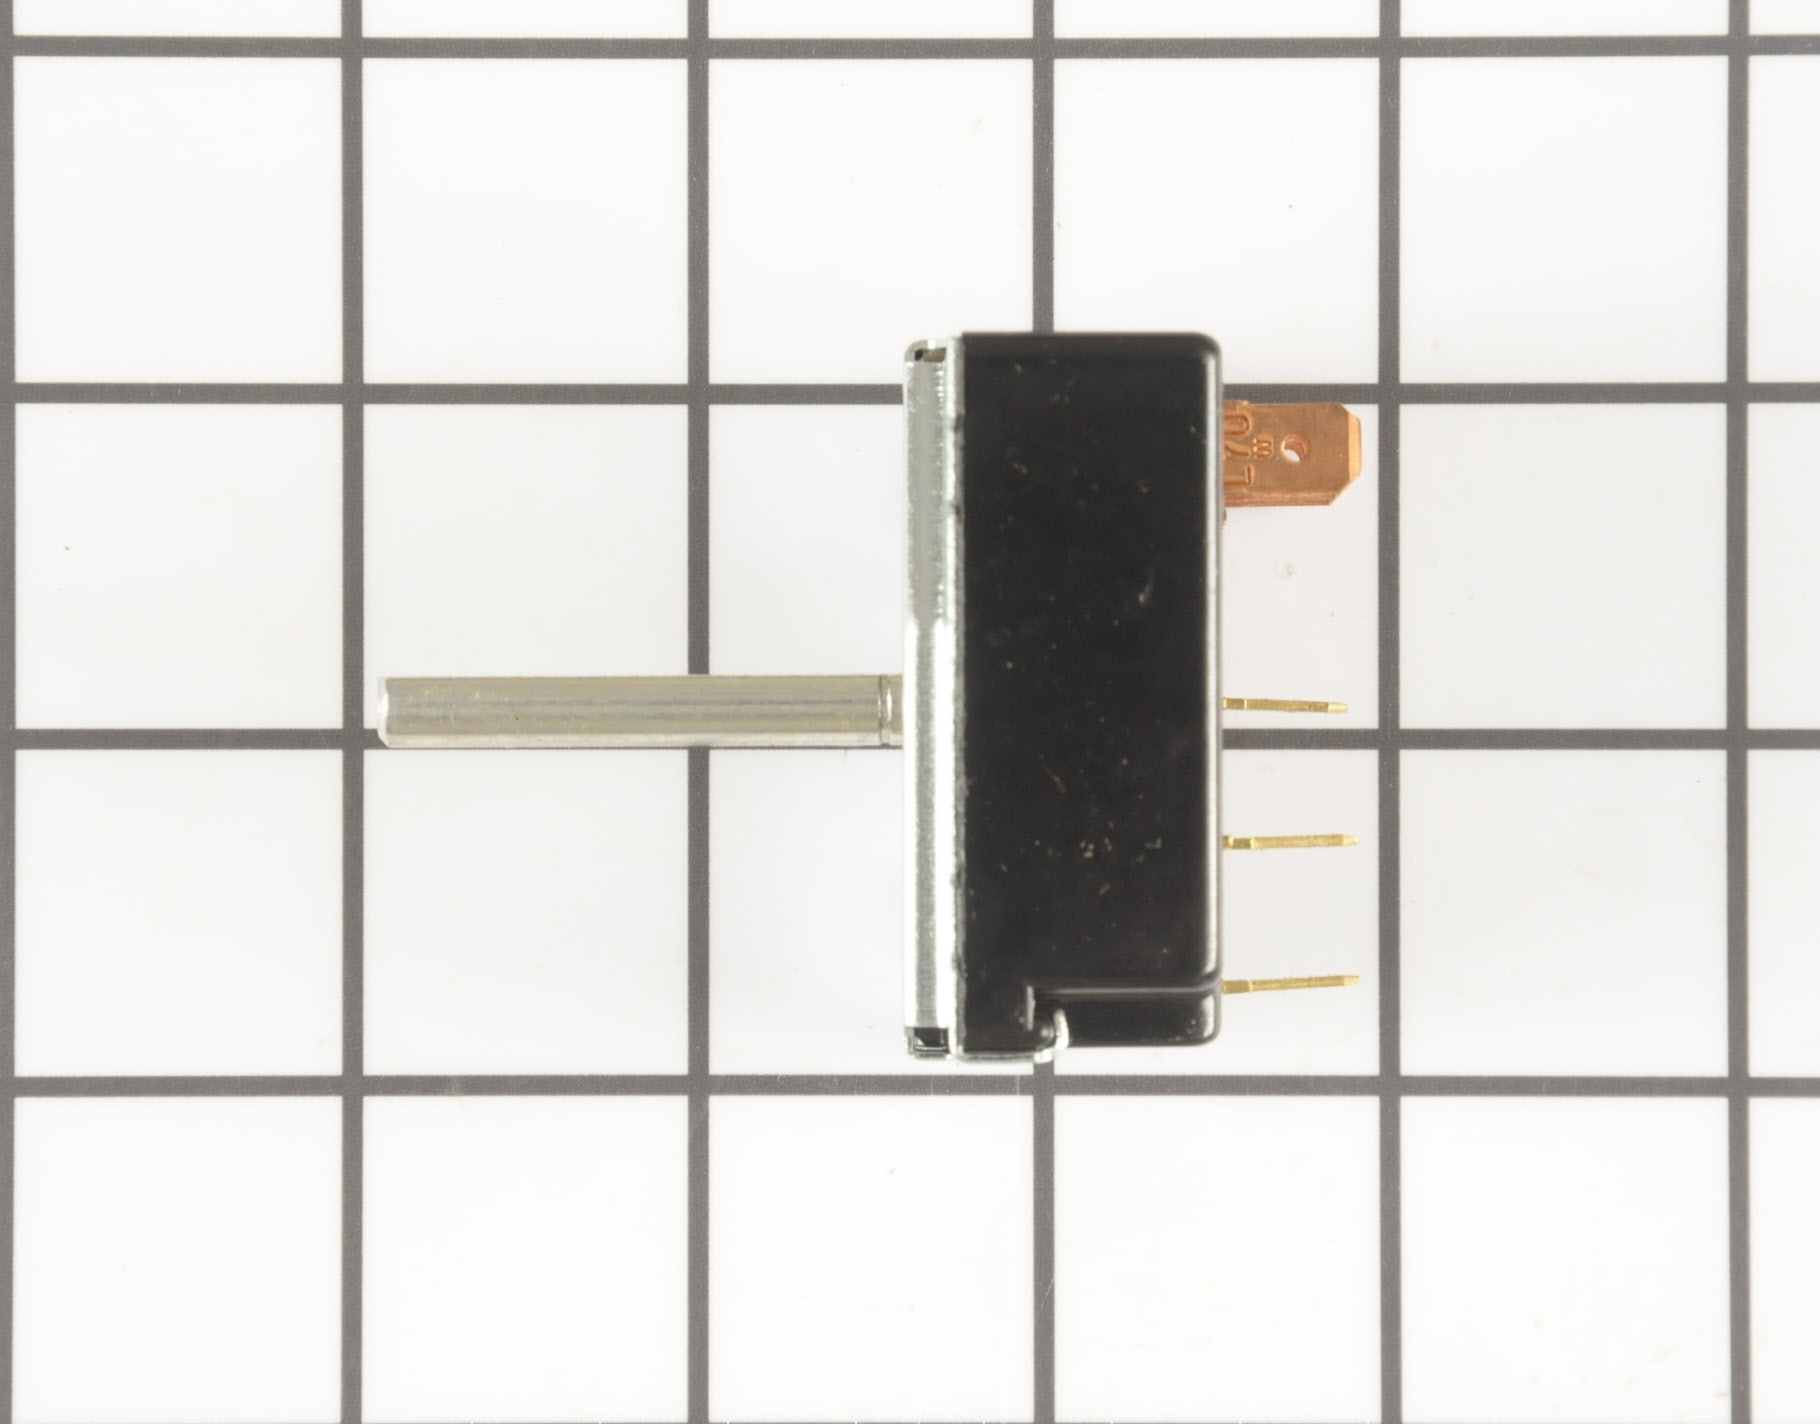 Magic Chef Range/Stove/Oven Part # WP7403P172-60 - Selector Switch